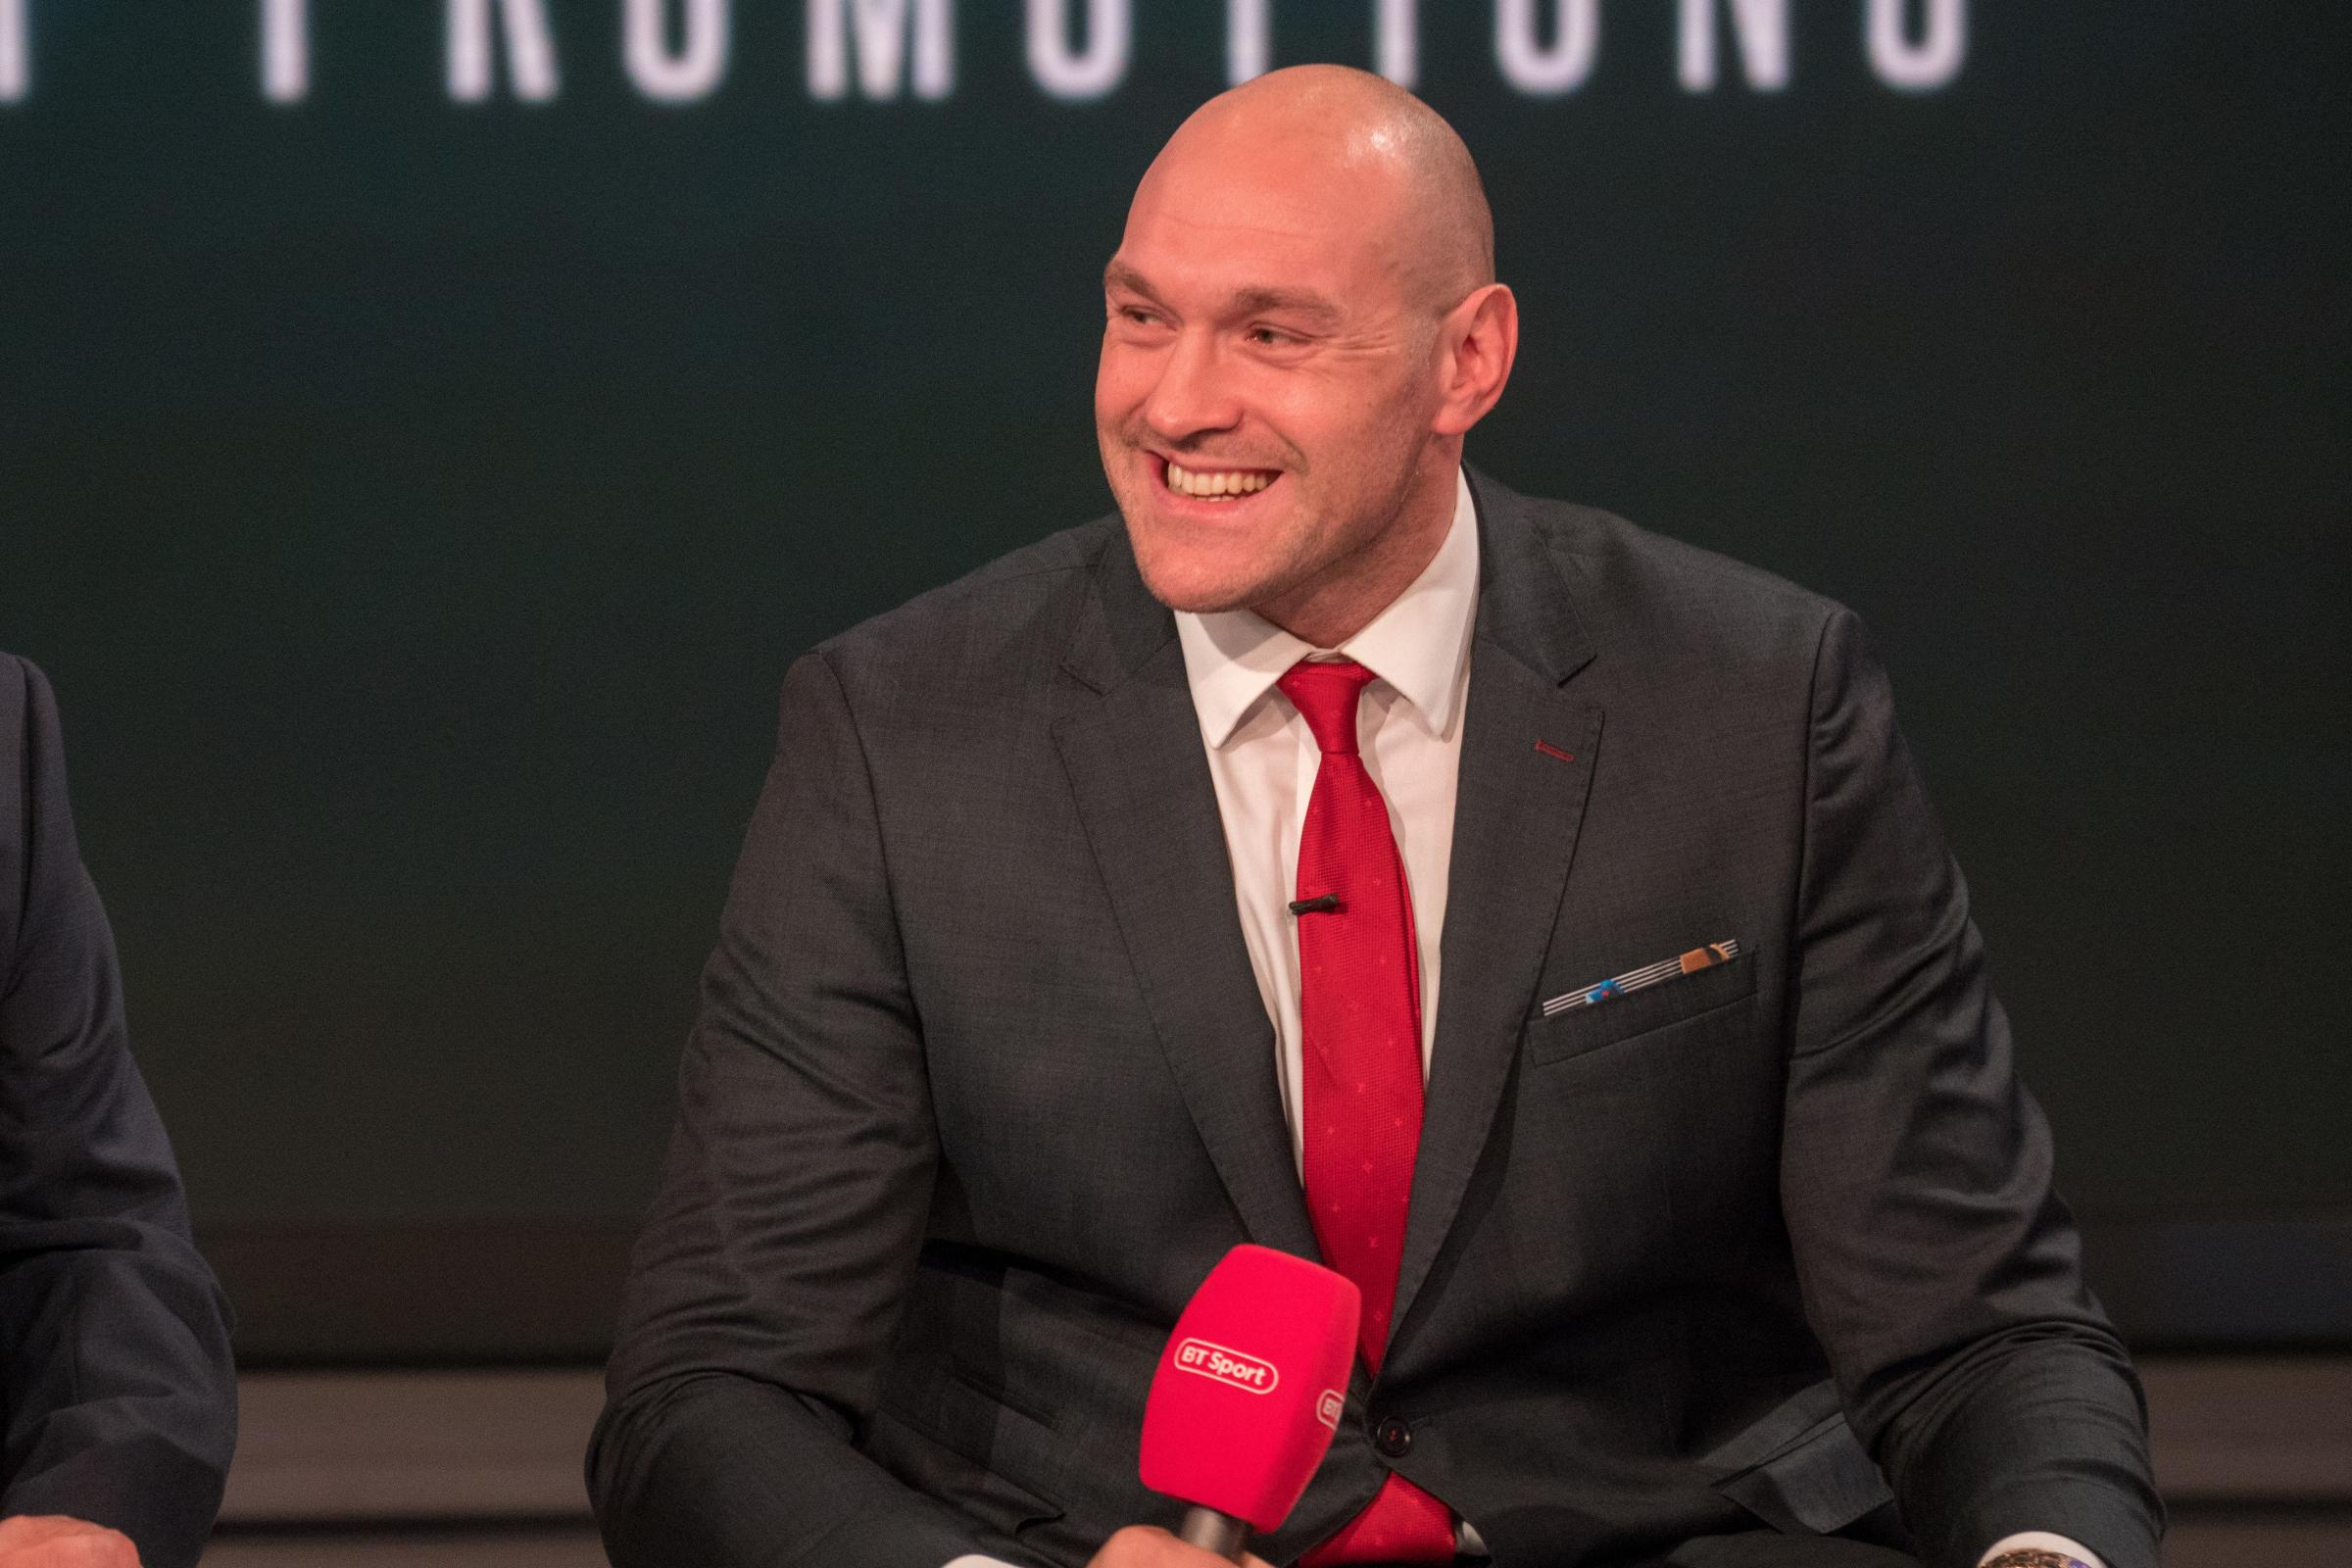 Tyson Fury is set to face Tom Schwarz